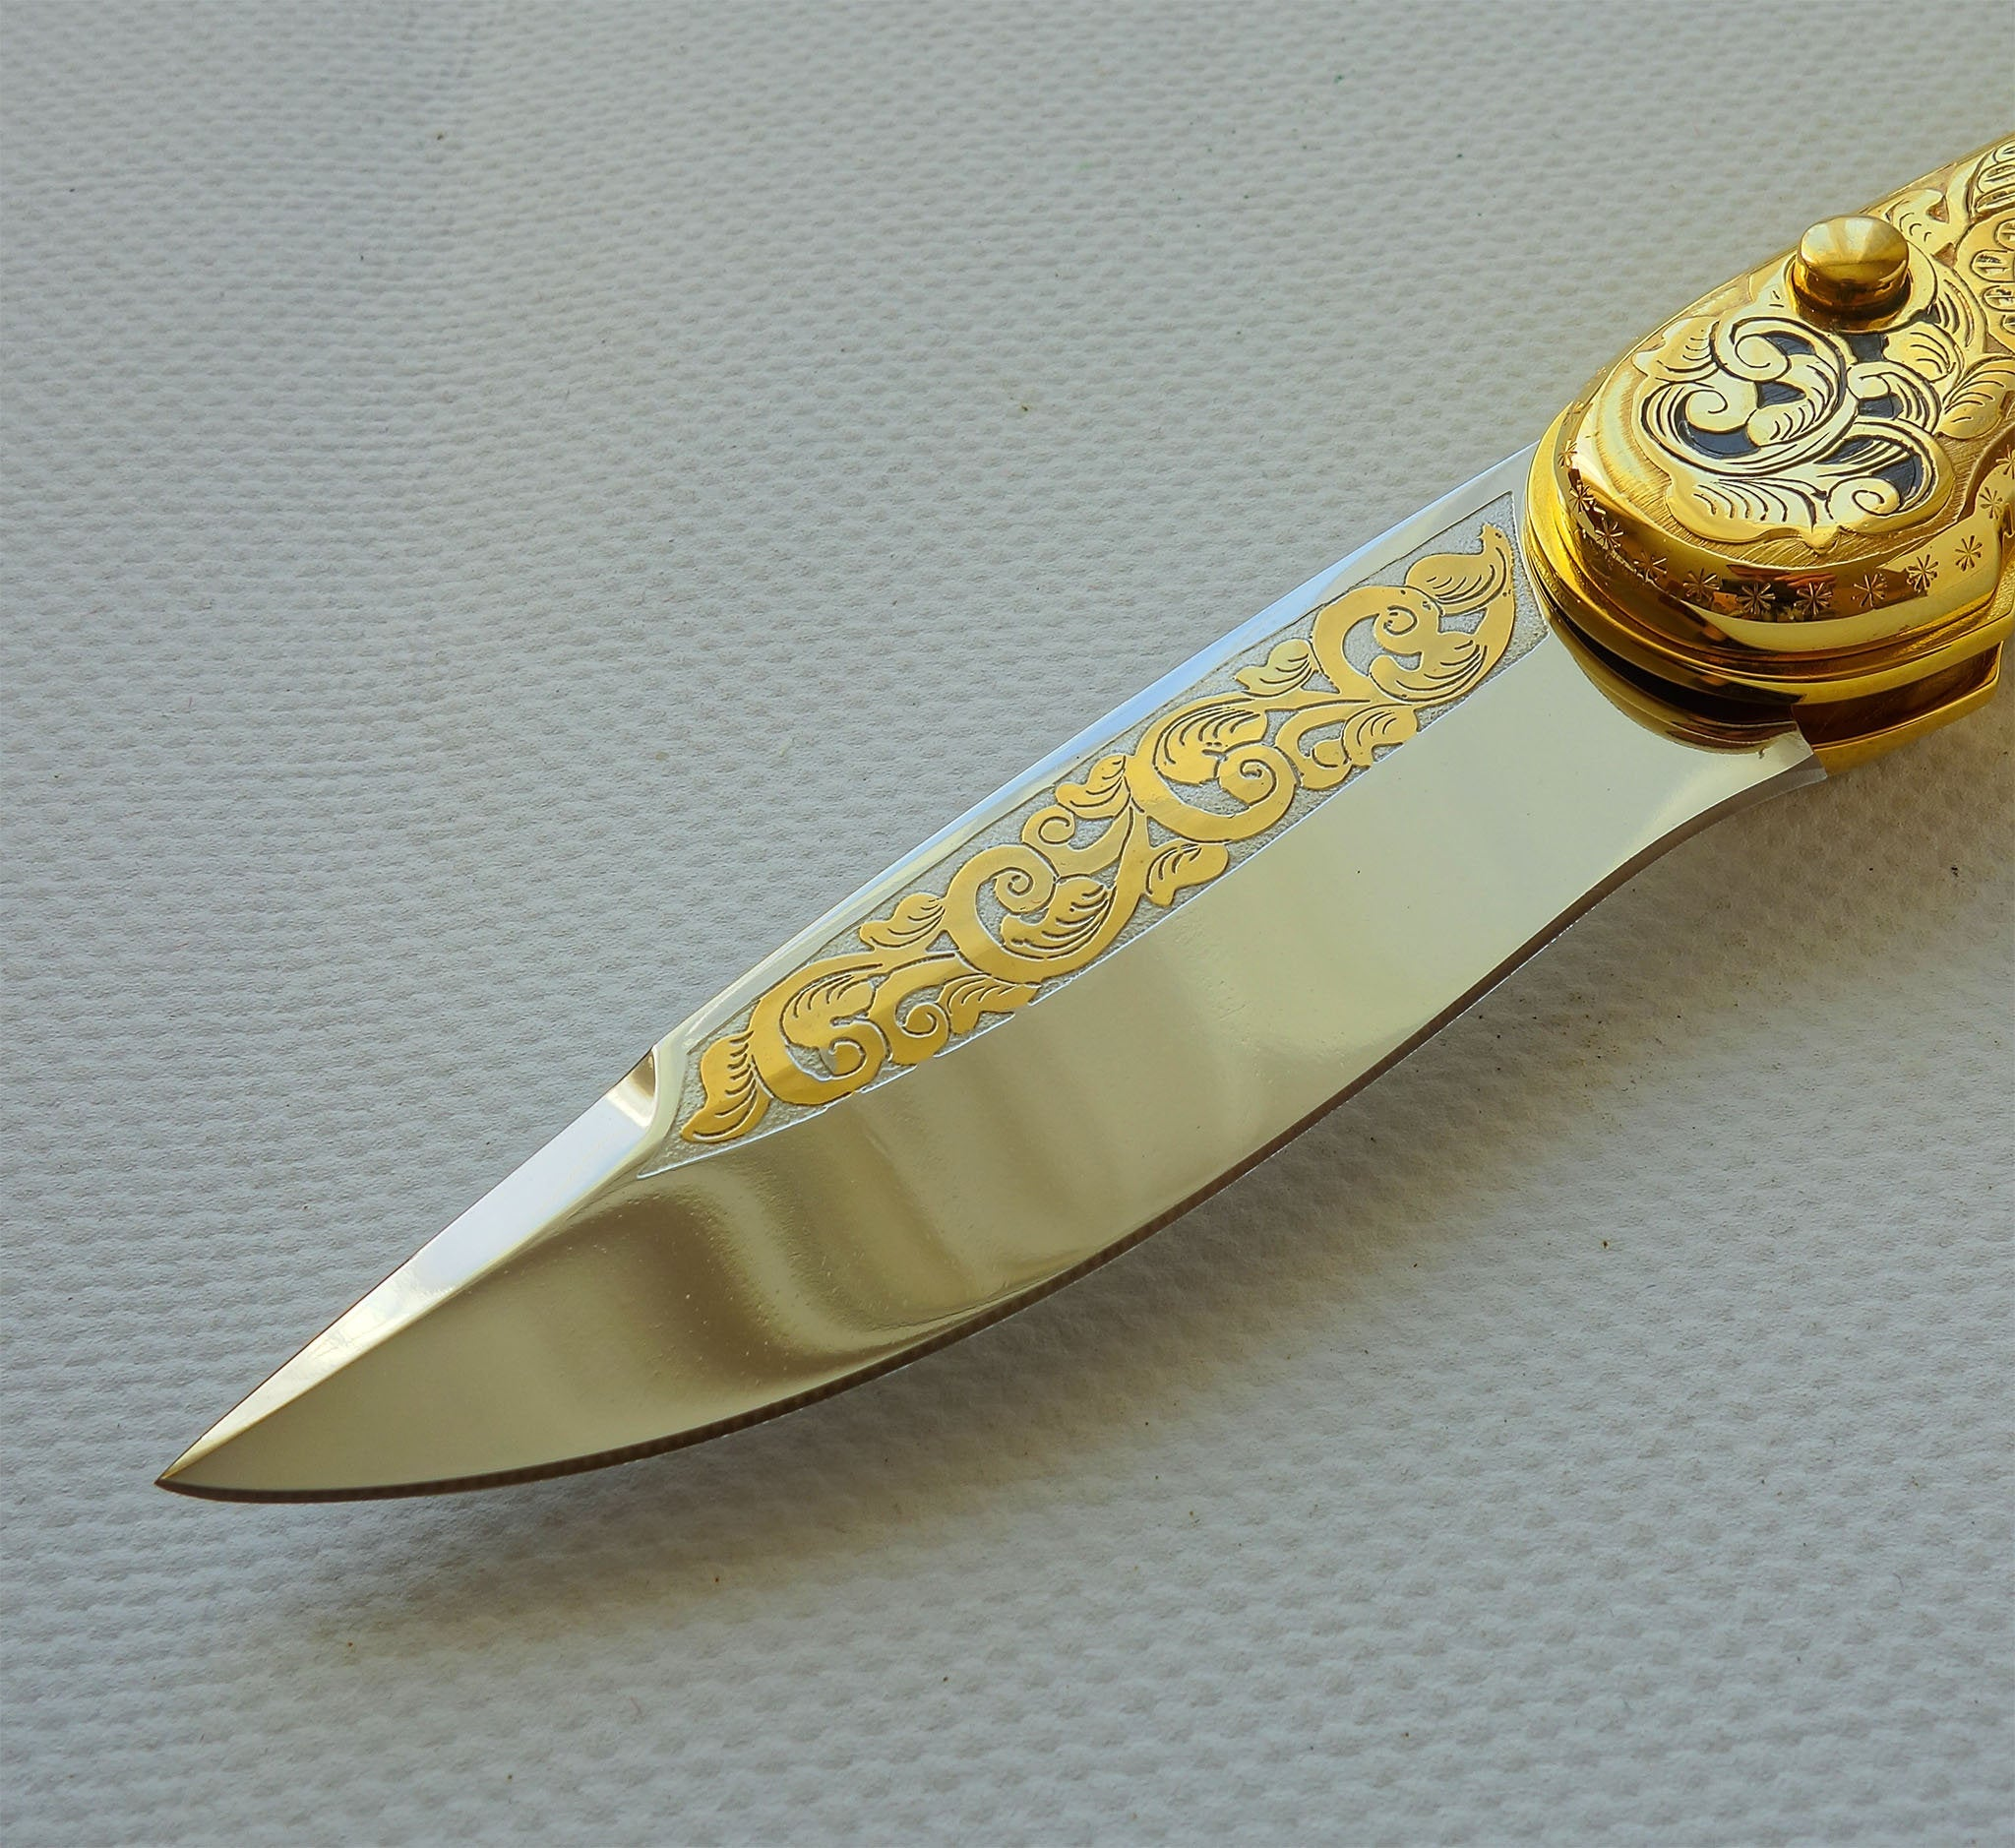 Gold knife Tiger, 40th anniversary gift for father in law, custom gift ideas, 40th birthday gift for coworker, retirement gift for boss